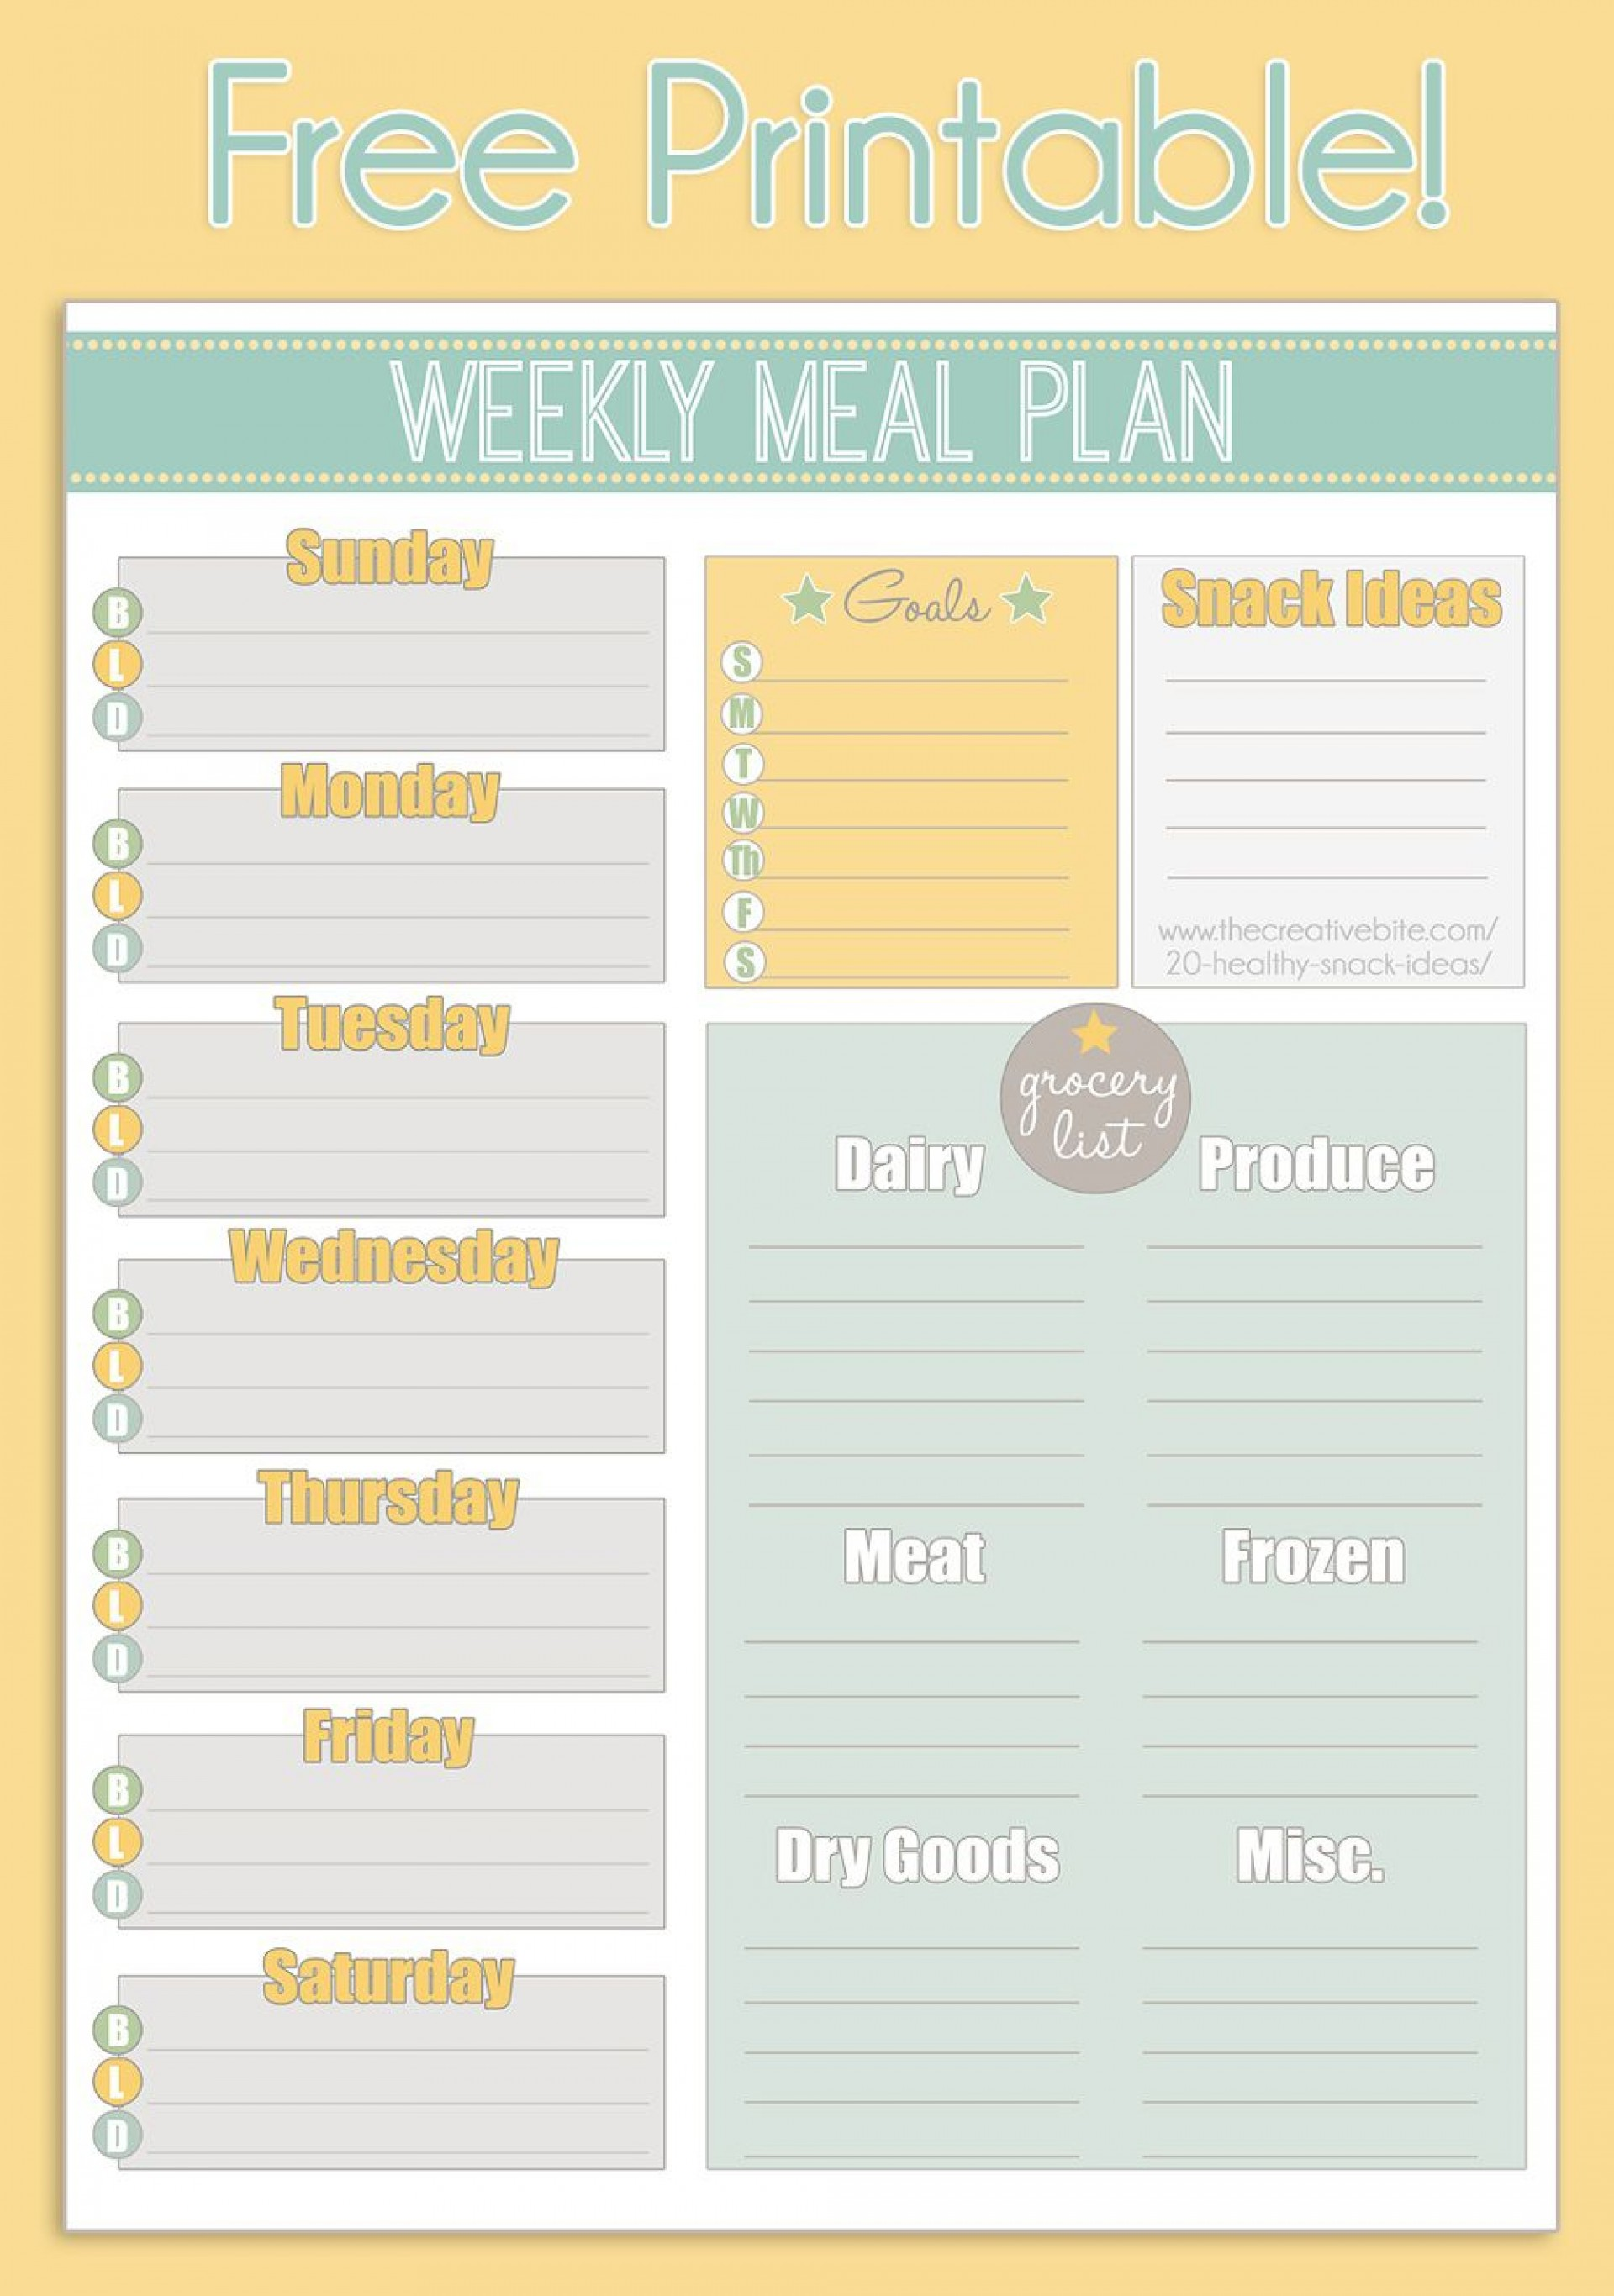 004 Archaicawful Meal Plan With Printable Grocery List Photo  Planning Template Excel Free1920